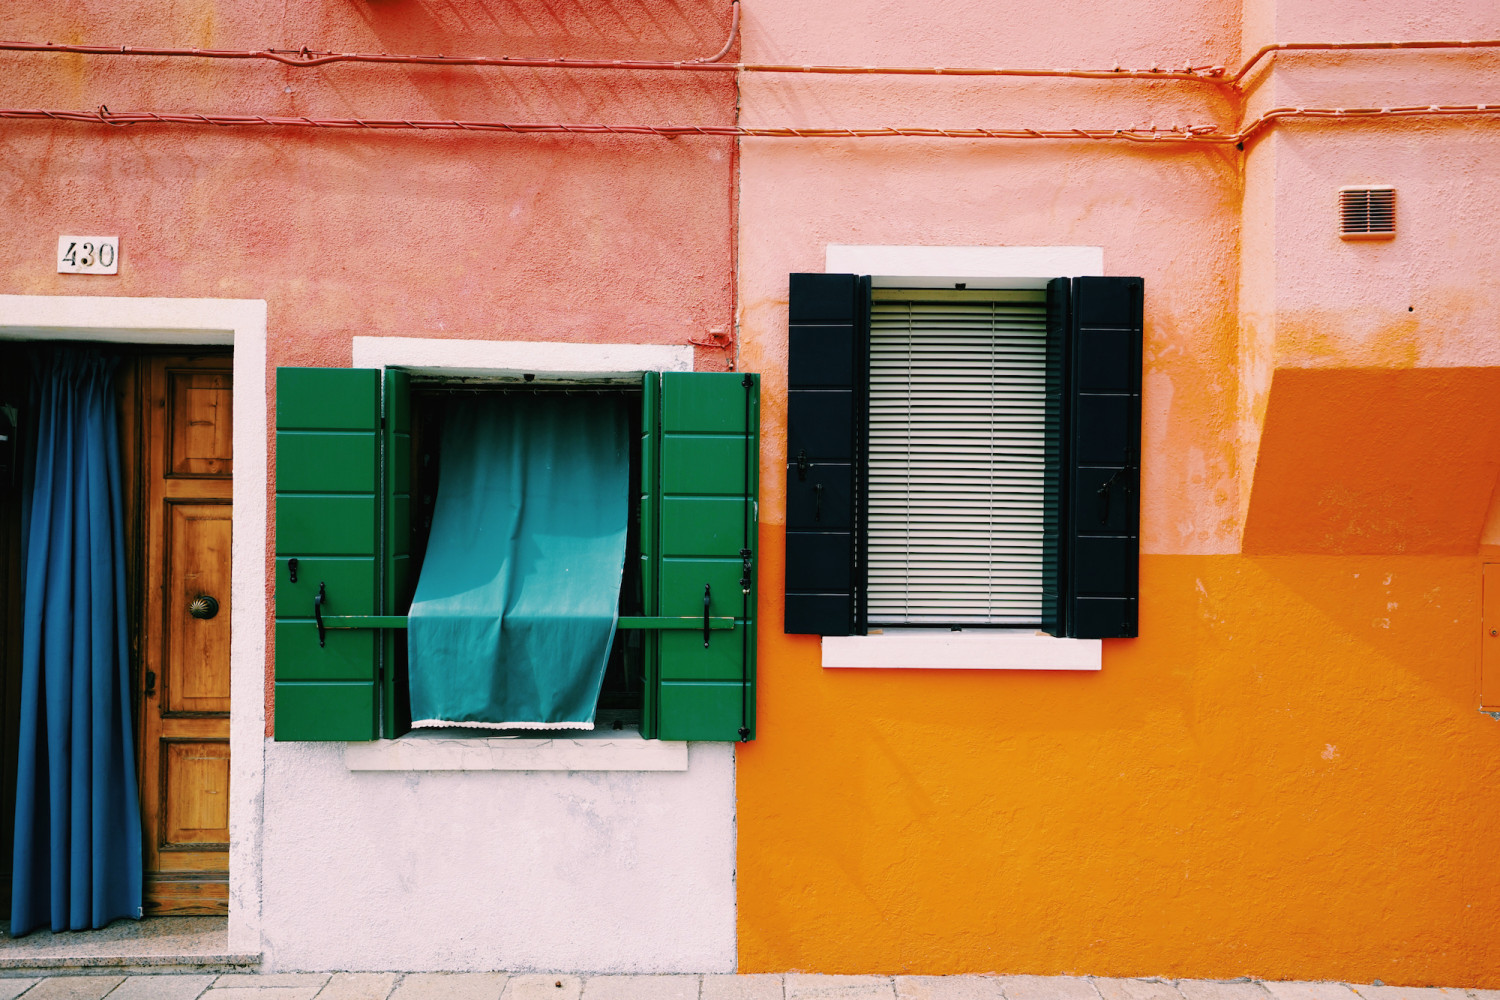 burano-side-by-side-dante-vincent-photography